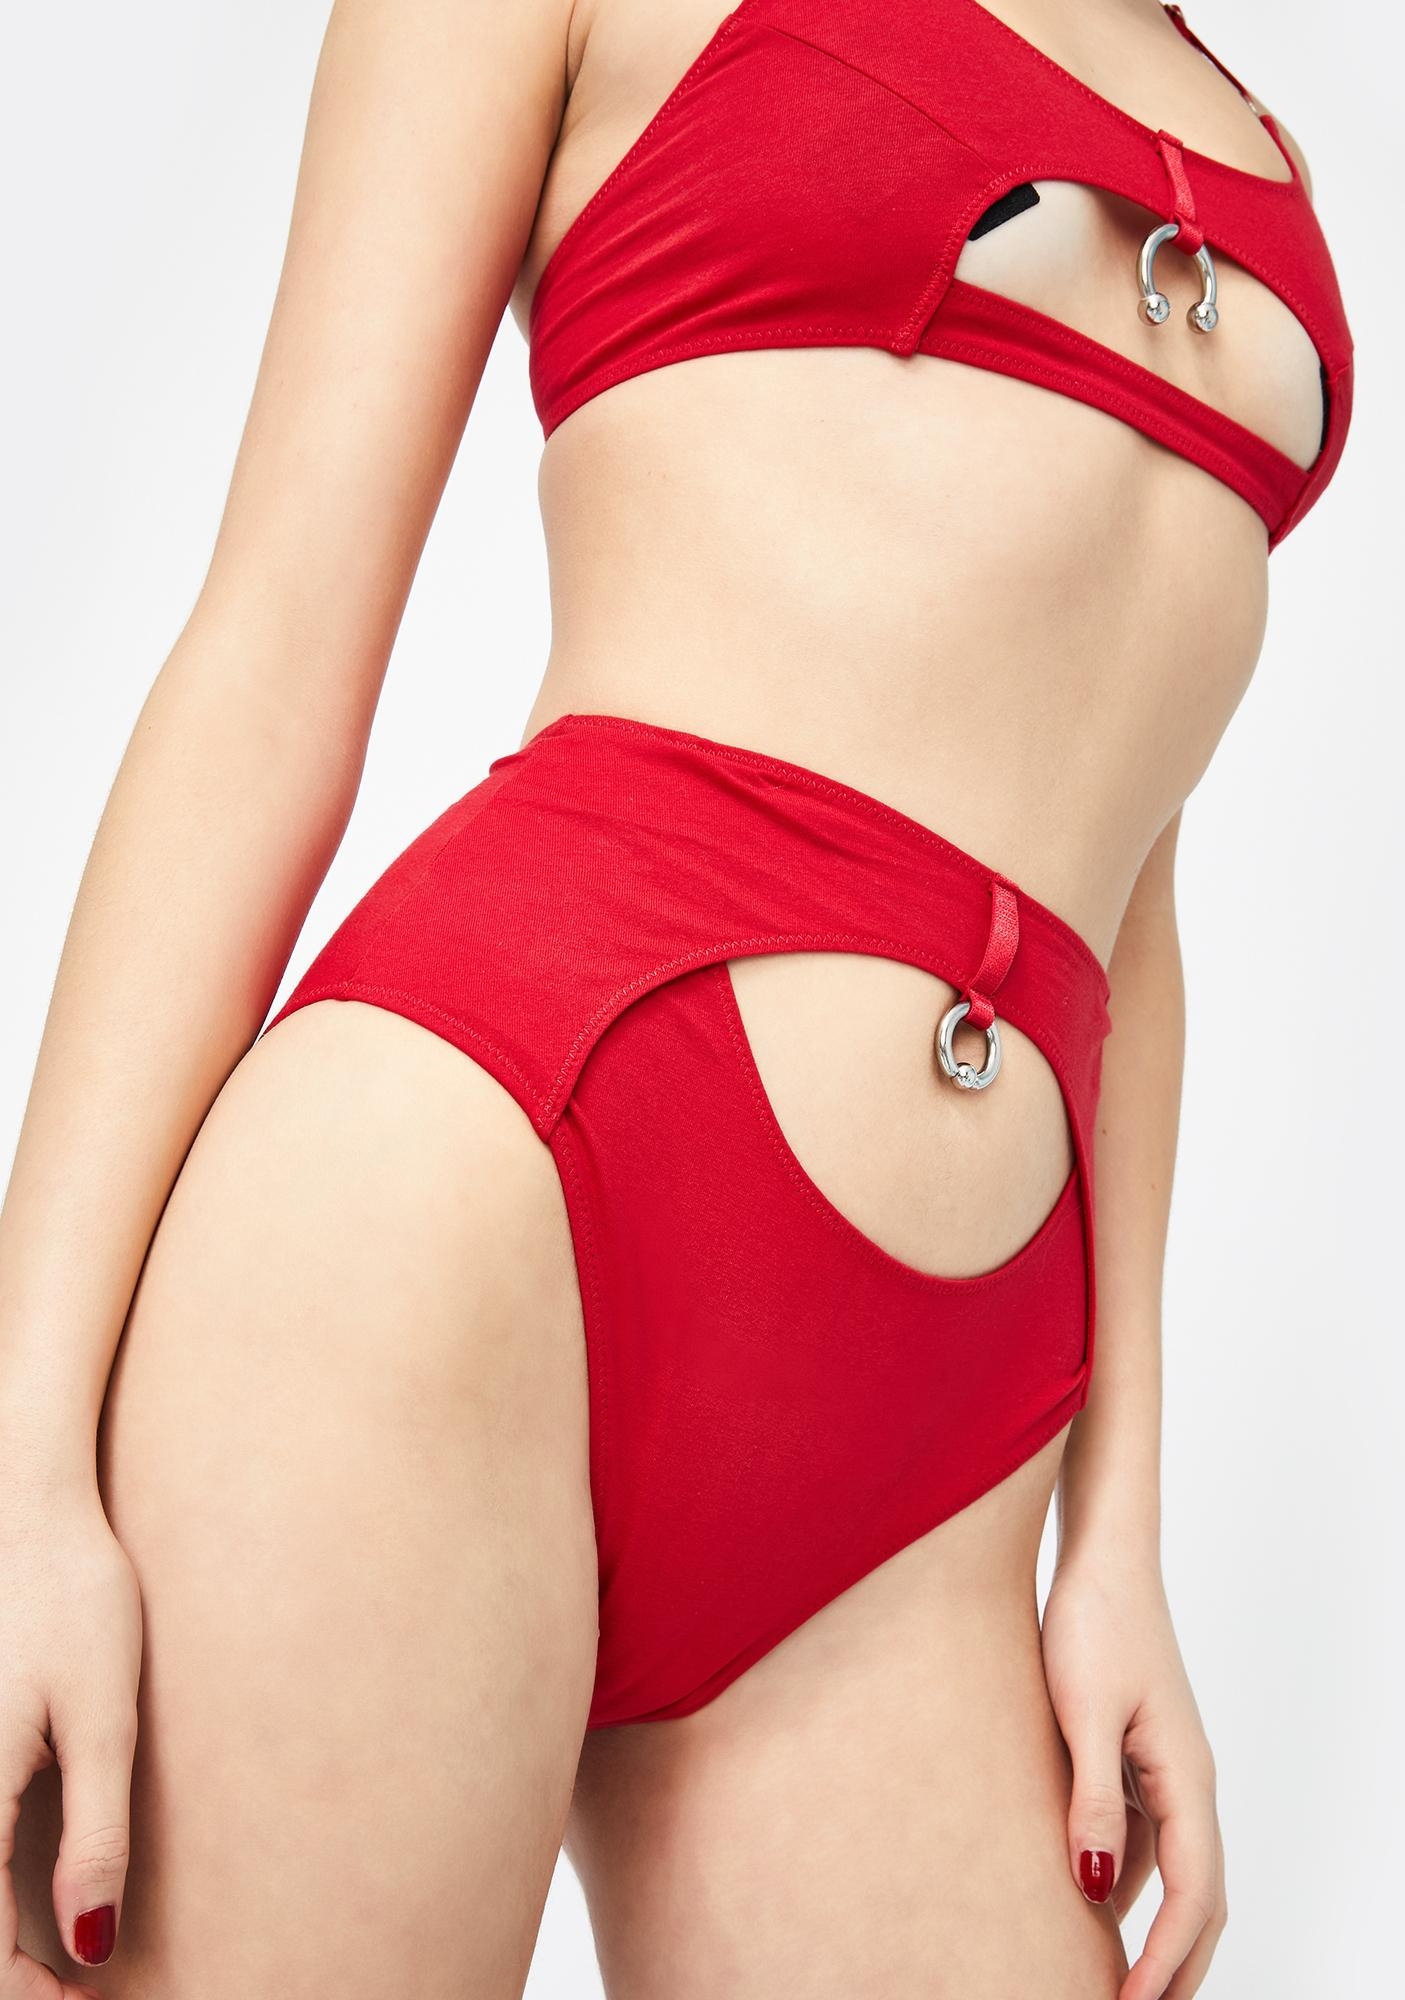 The End Lingerie Red Let Go High Waist Backless Briefs